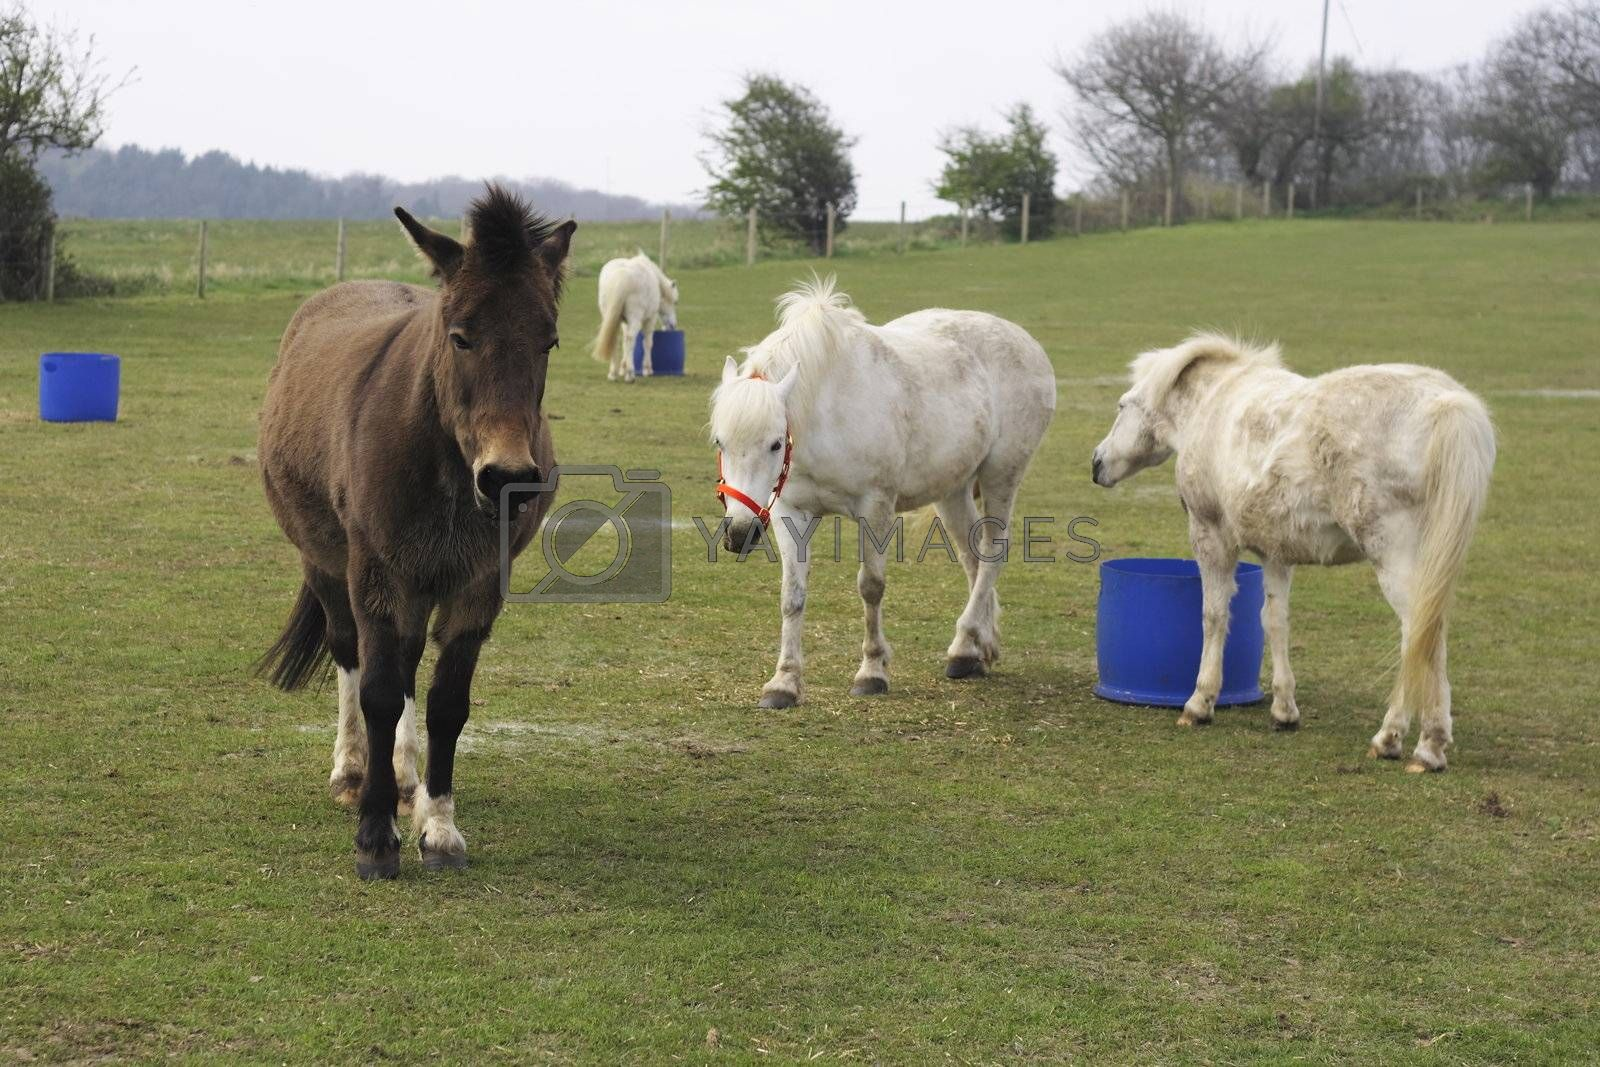 ponies and mule in a field eating from buckets